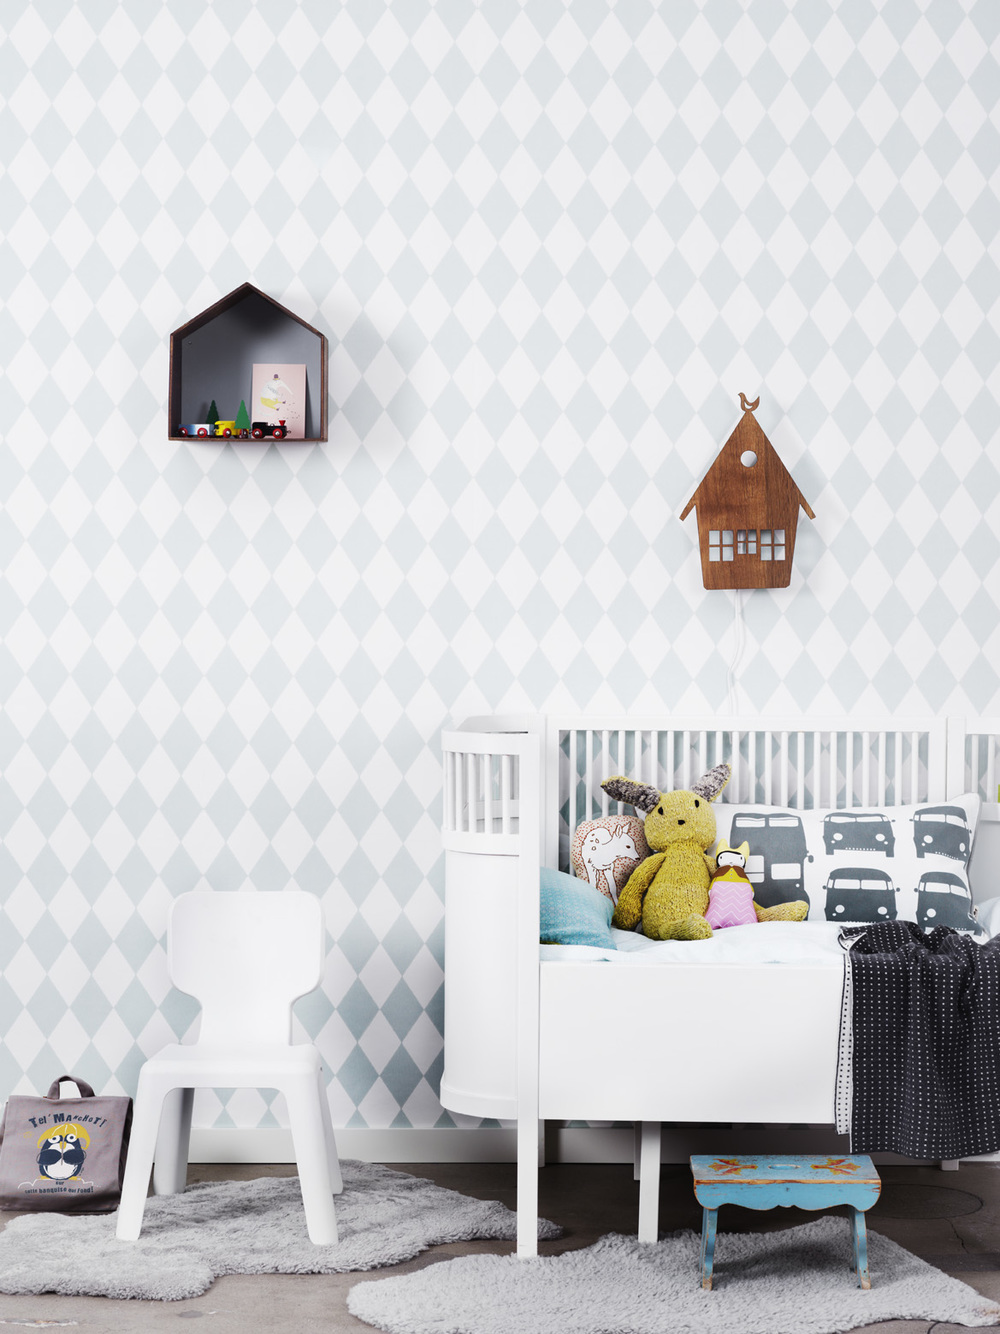 ... kinderkamer scandinavisch picture idea 4 basic kinderkamerstylist